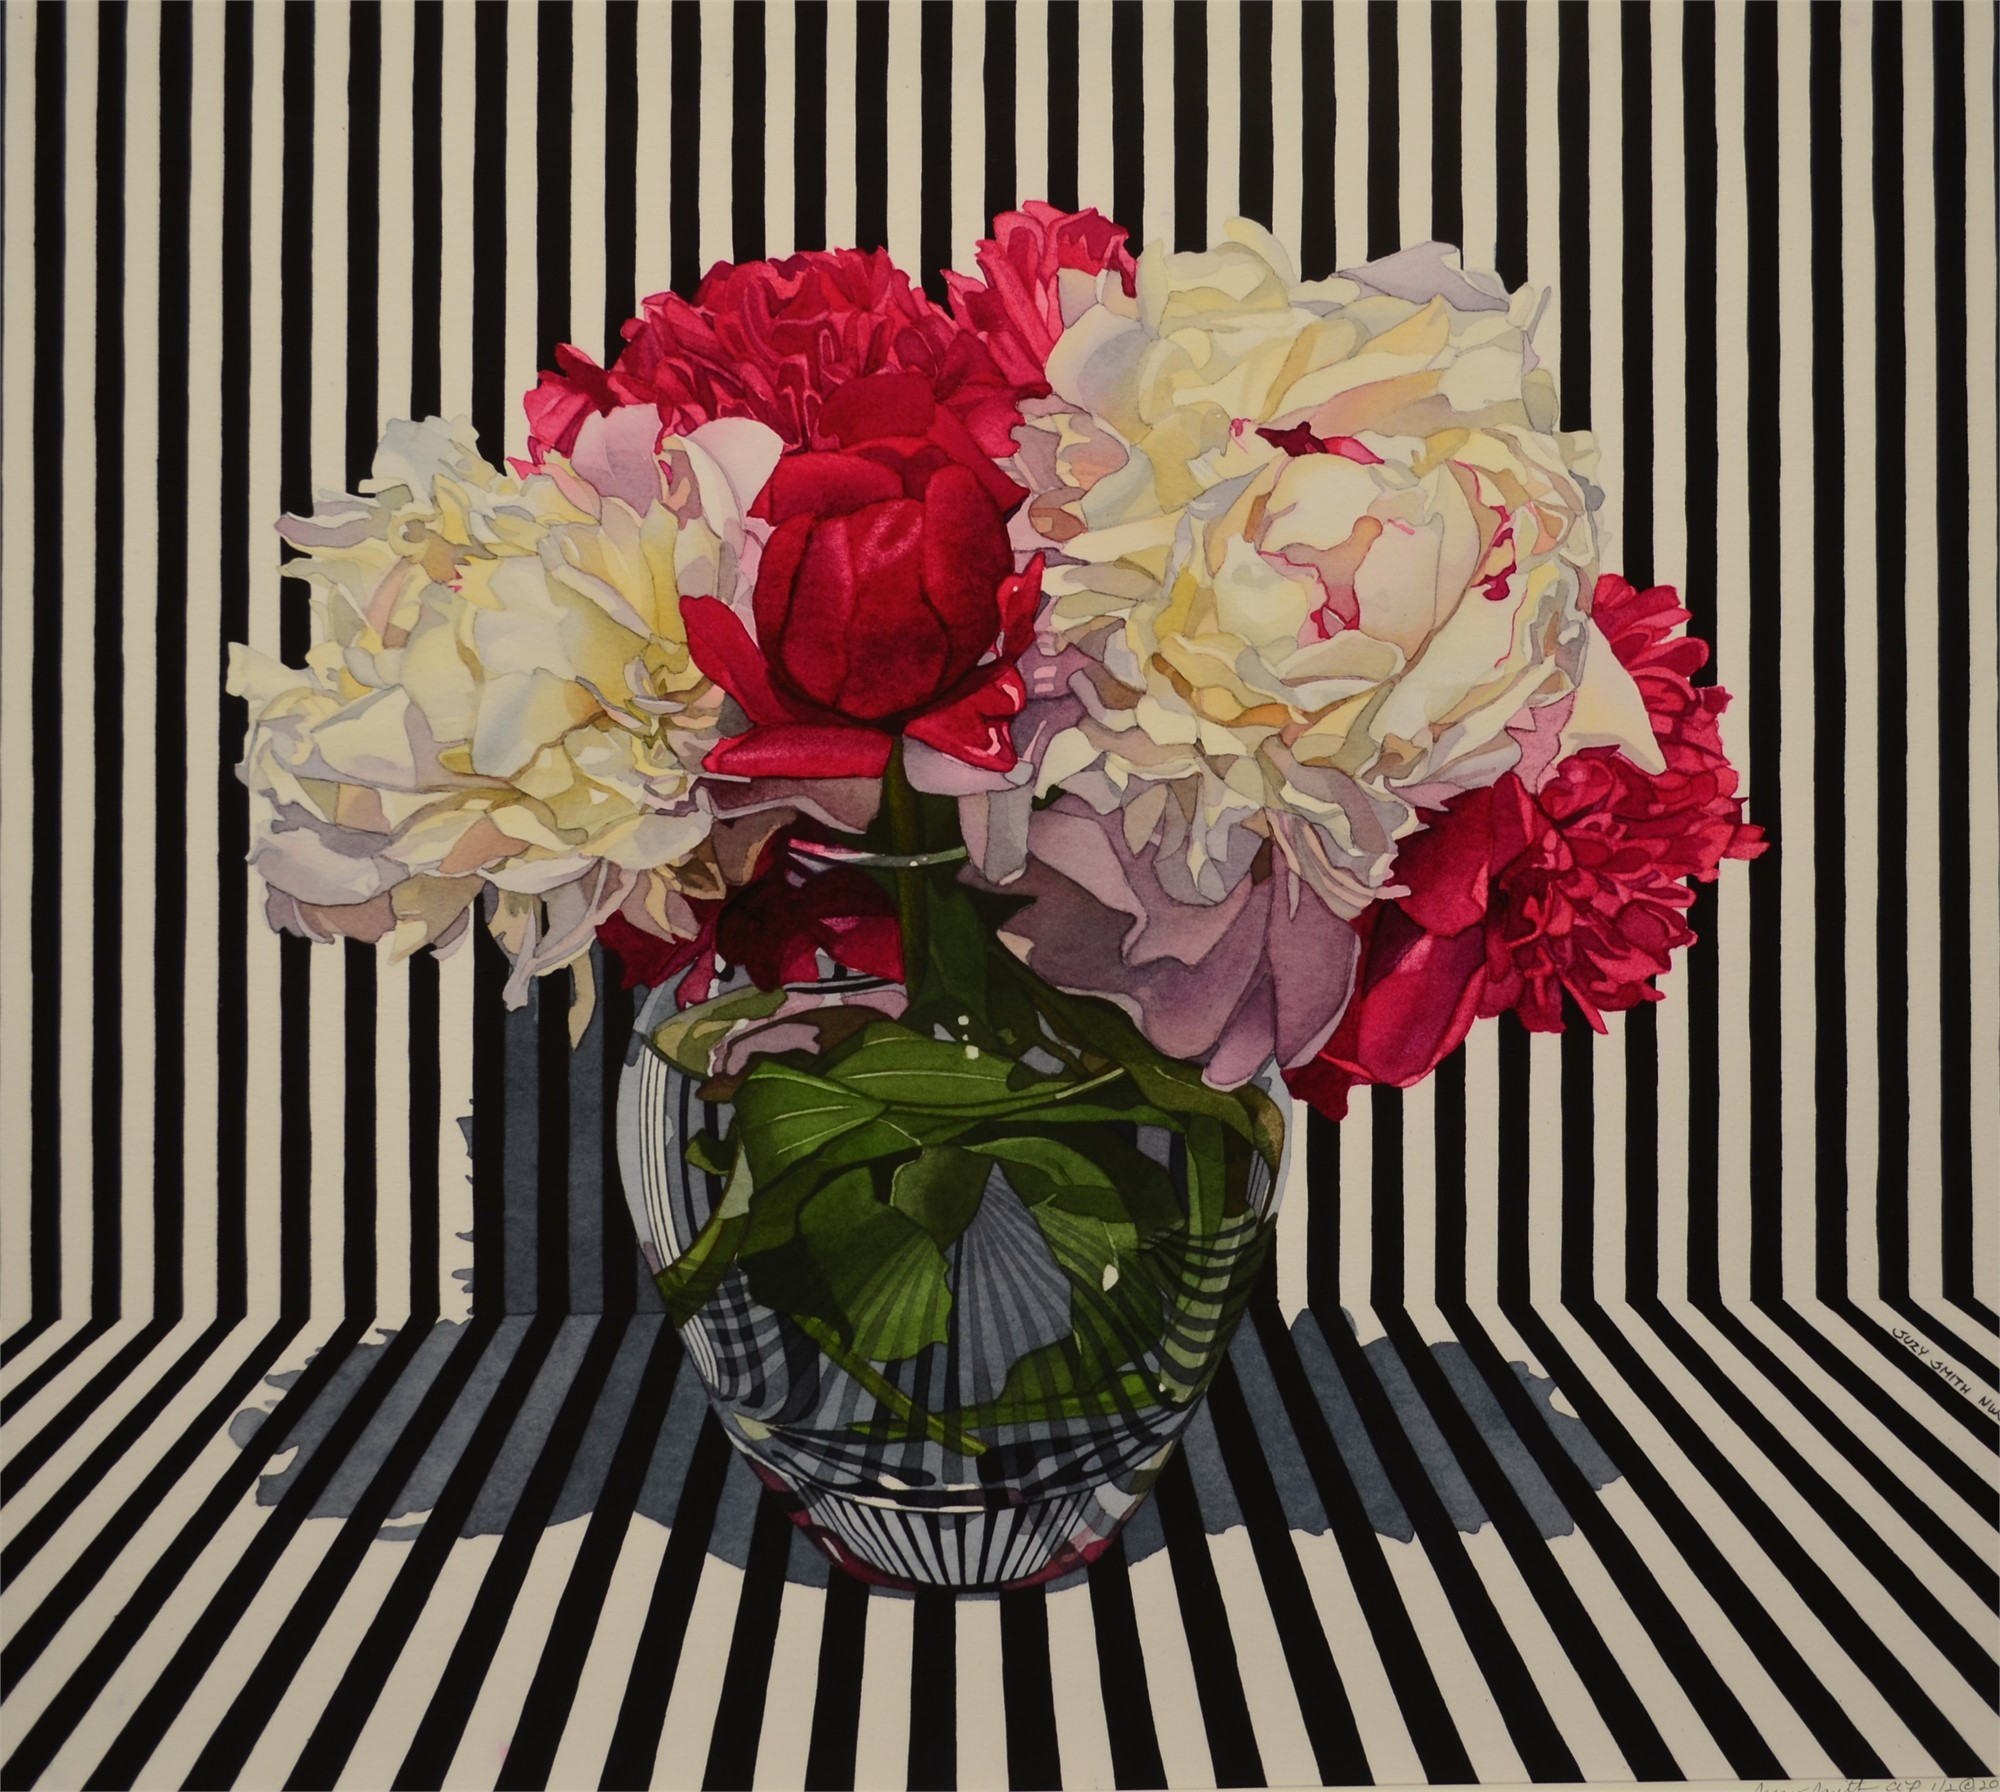 Peonies with Stripes by Suzy Smith